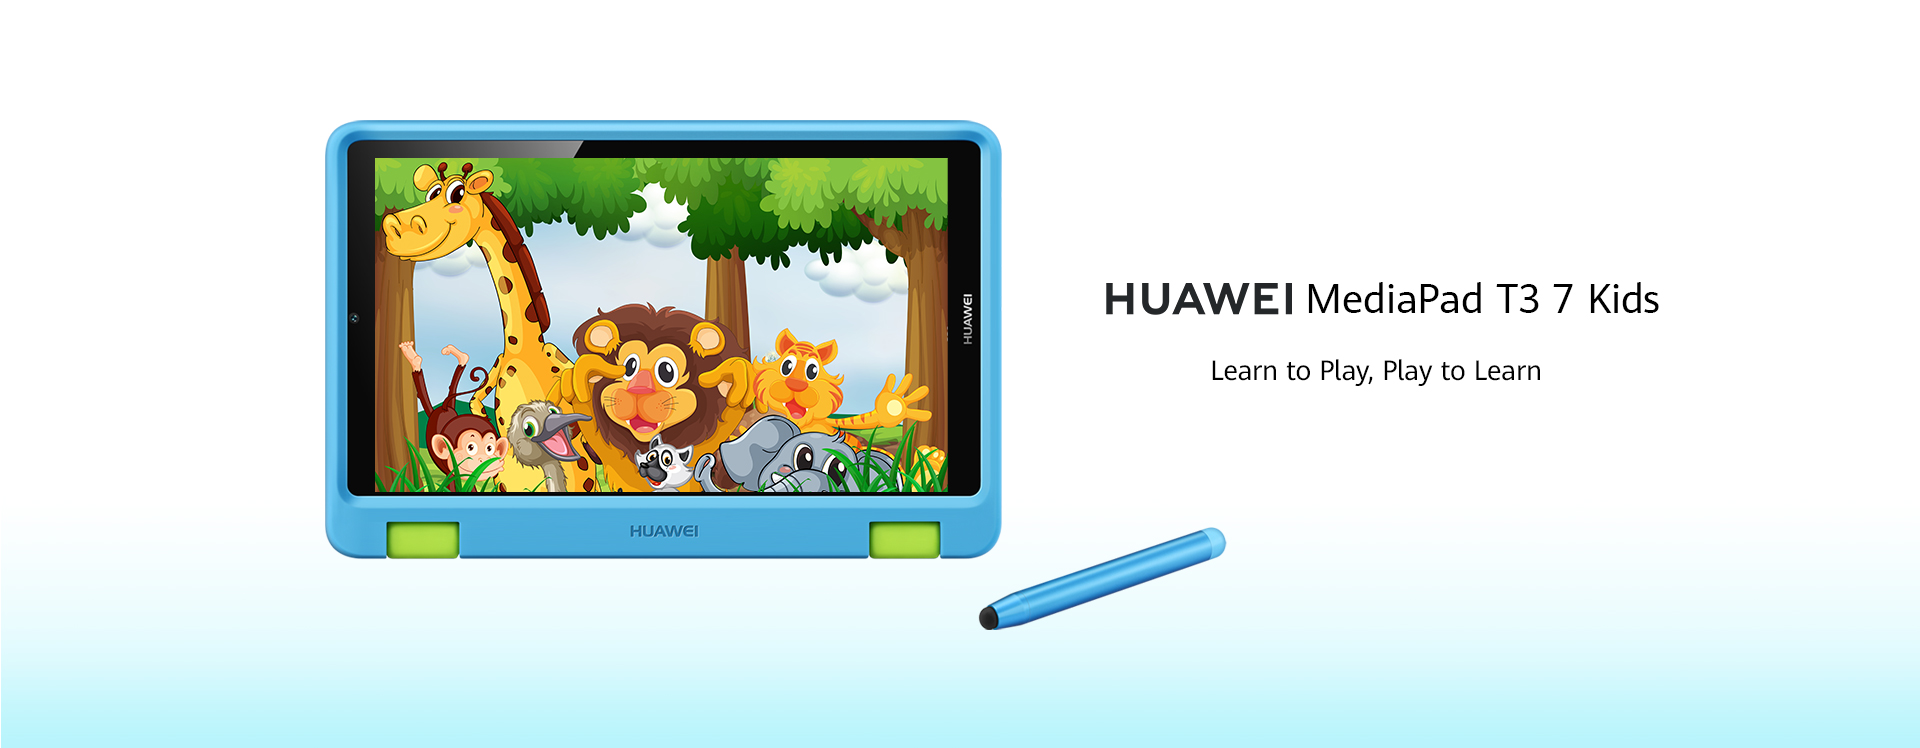 HUAWEI MediaPad T3 7 kids tablet, 3G/WIFI android tablet